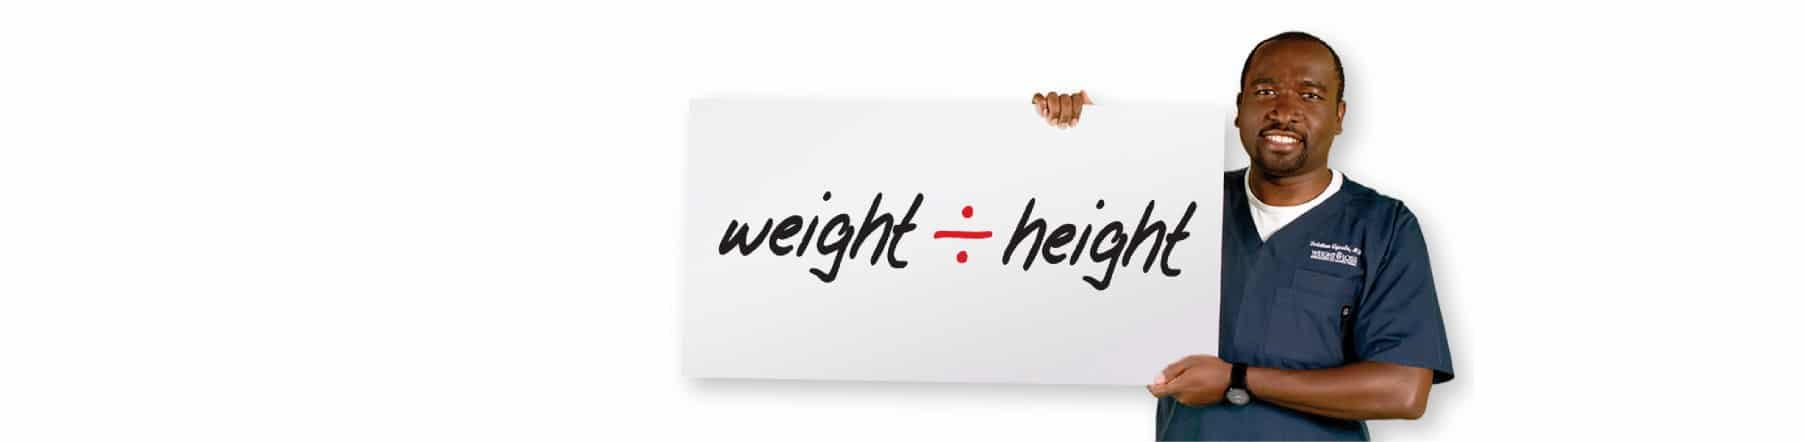 weight divided by height